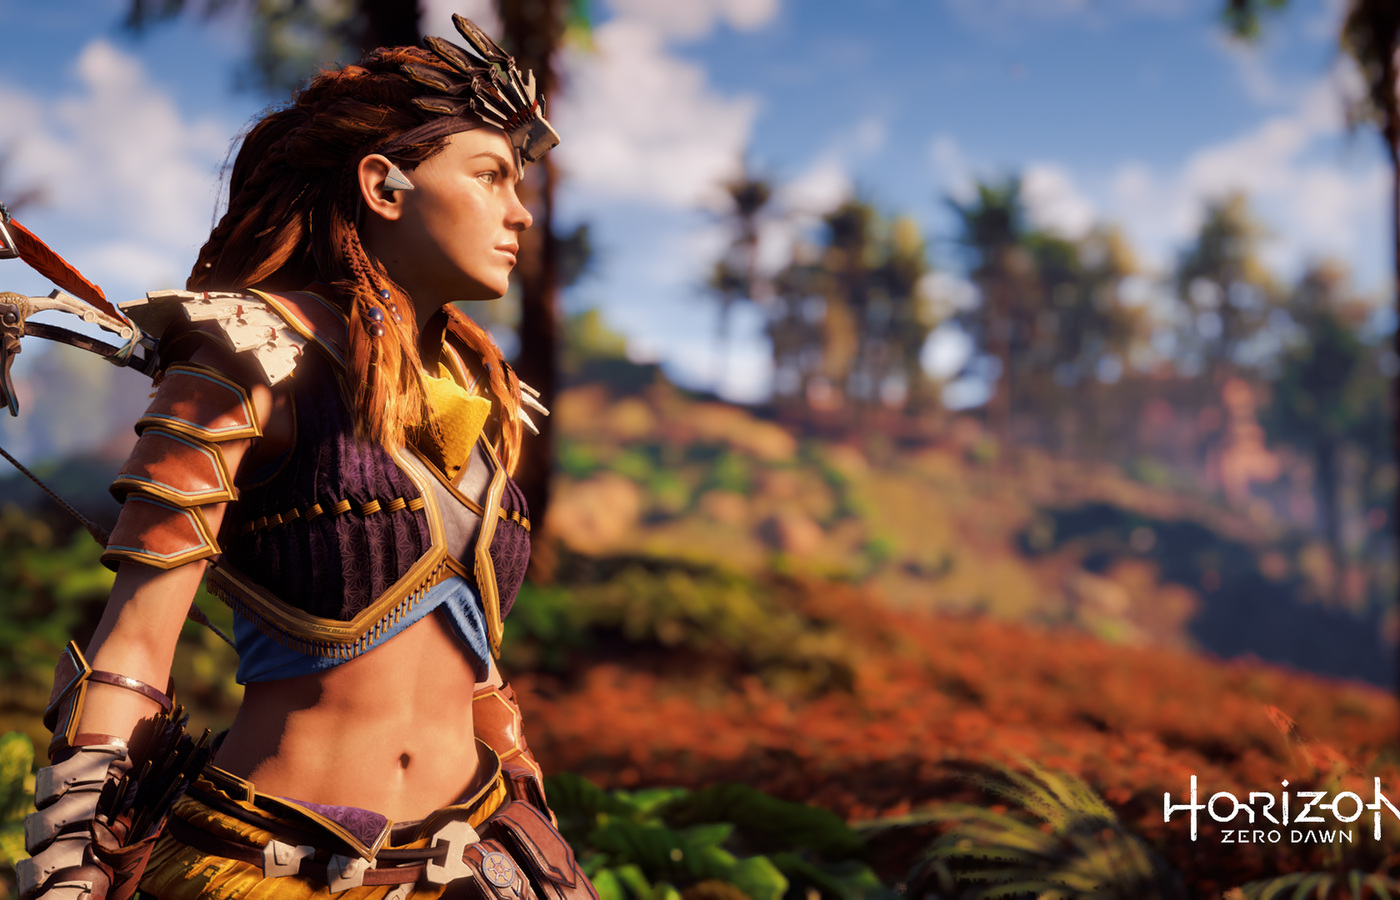 horizon-zero-dawn-ps4-pro-image.jpg